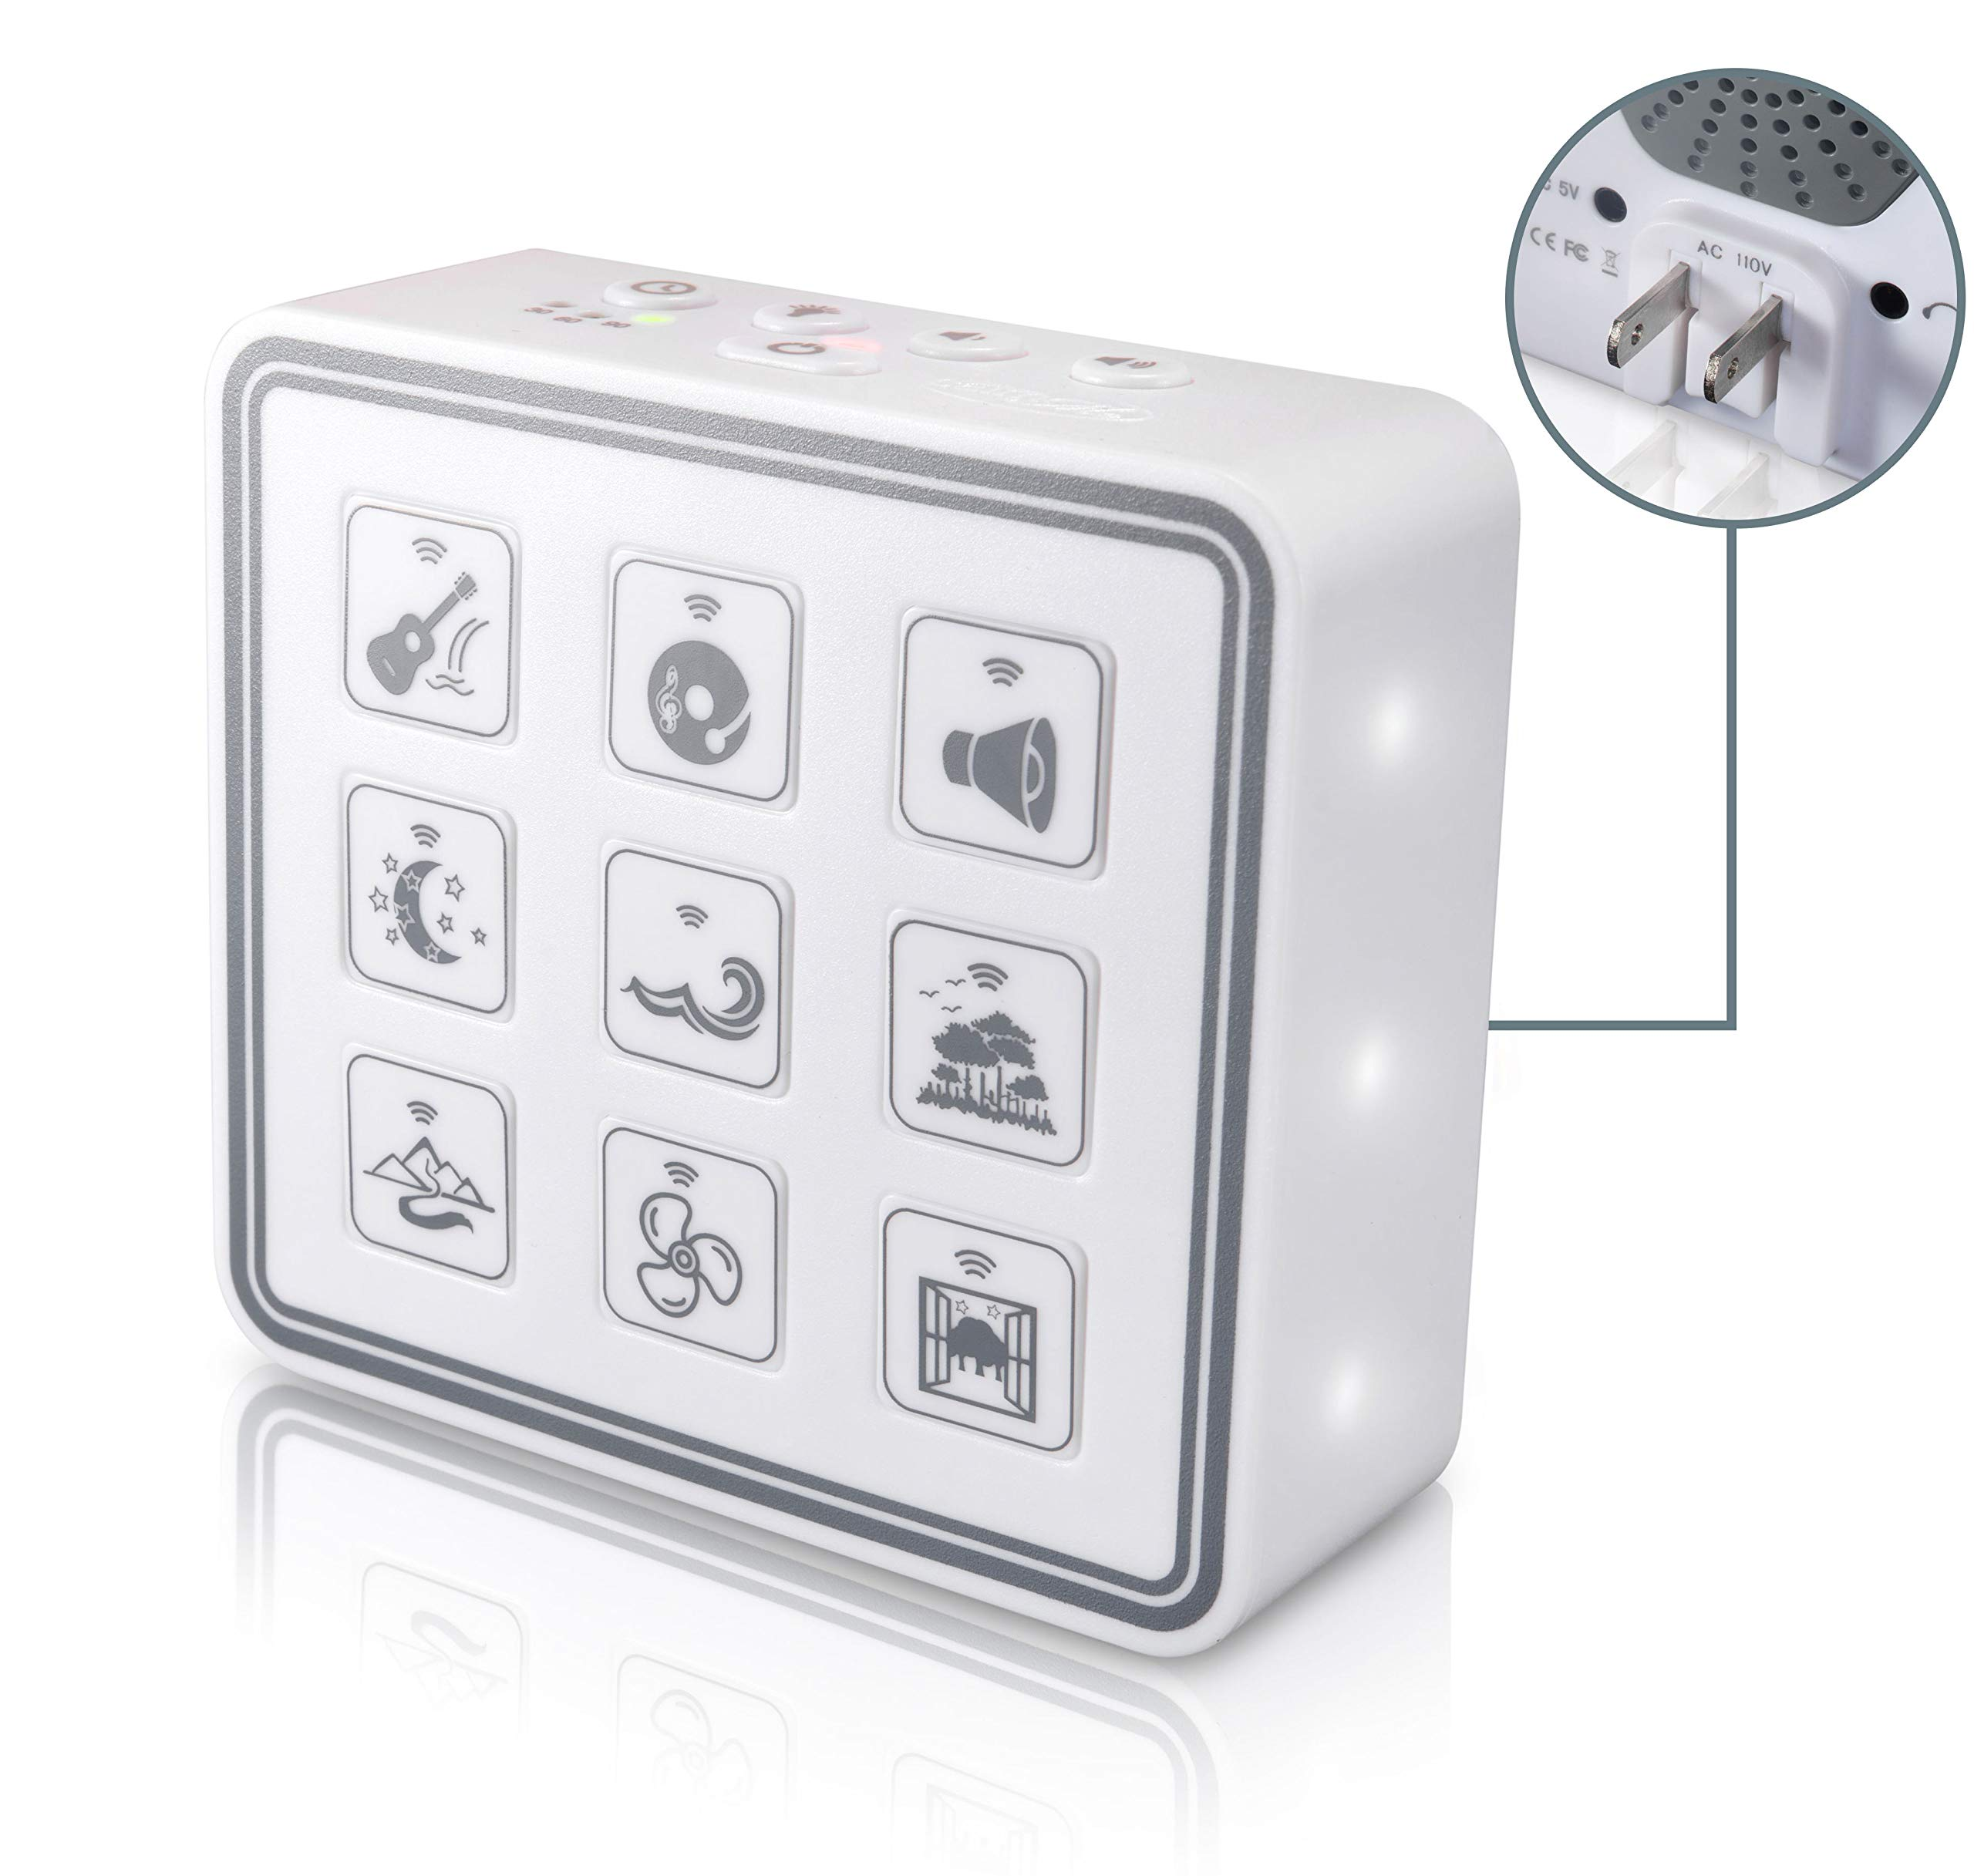 Portable & Compact Plug-In Nightlight White Noise Sound Machine-Relaxing Sleep Therapy for Adults & Baby w/9 Natural Sound Settings, Auto Timer, Headphone Jack & USB Cord – For Home & Travel (white)